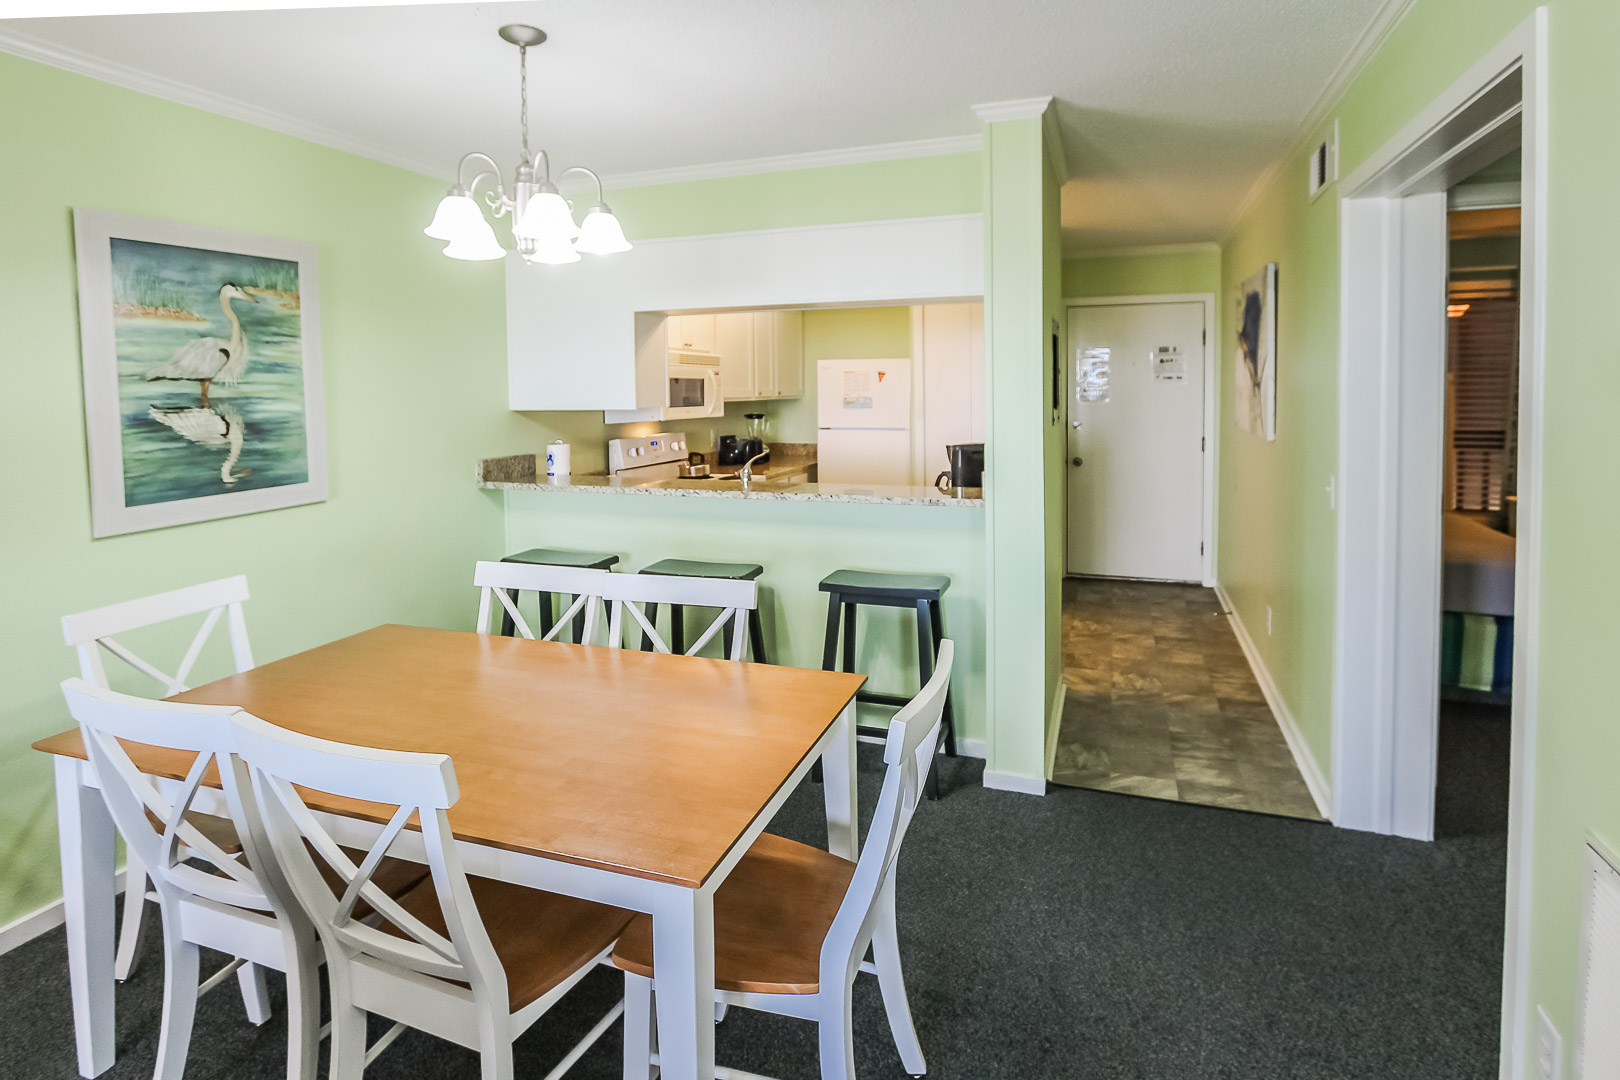 A lovely dining area at VRI's A Place at the Beach III in North Carolina